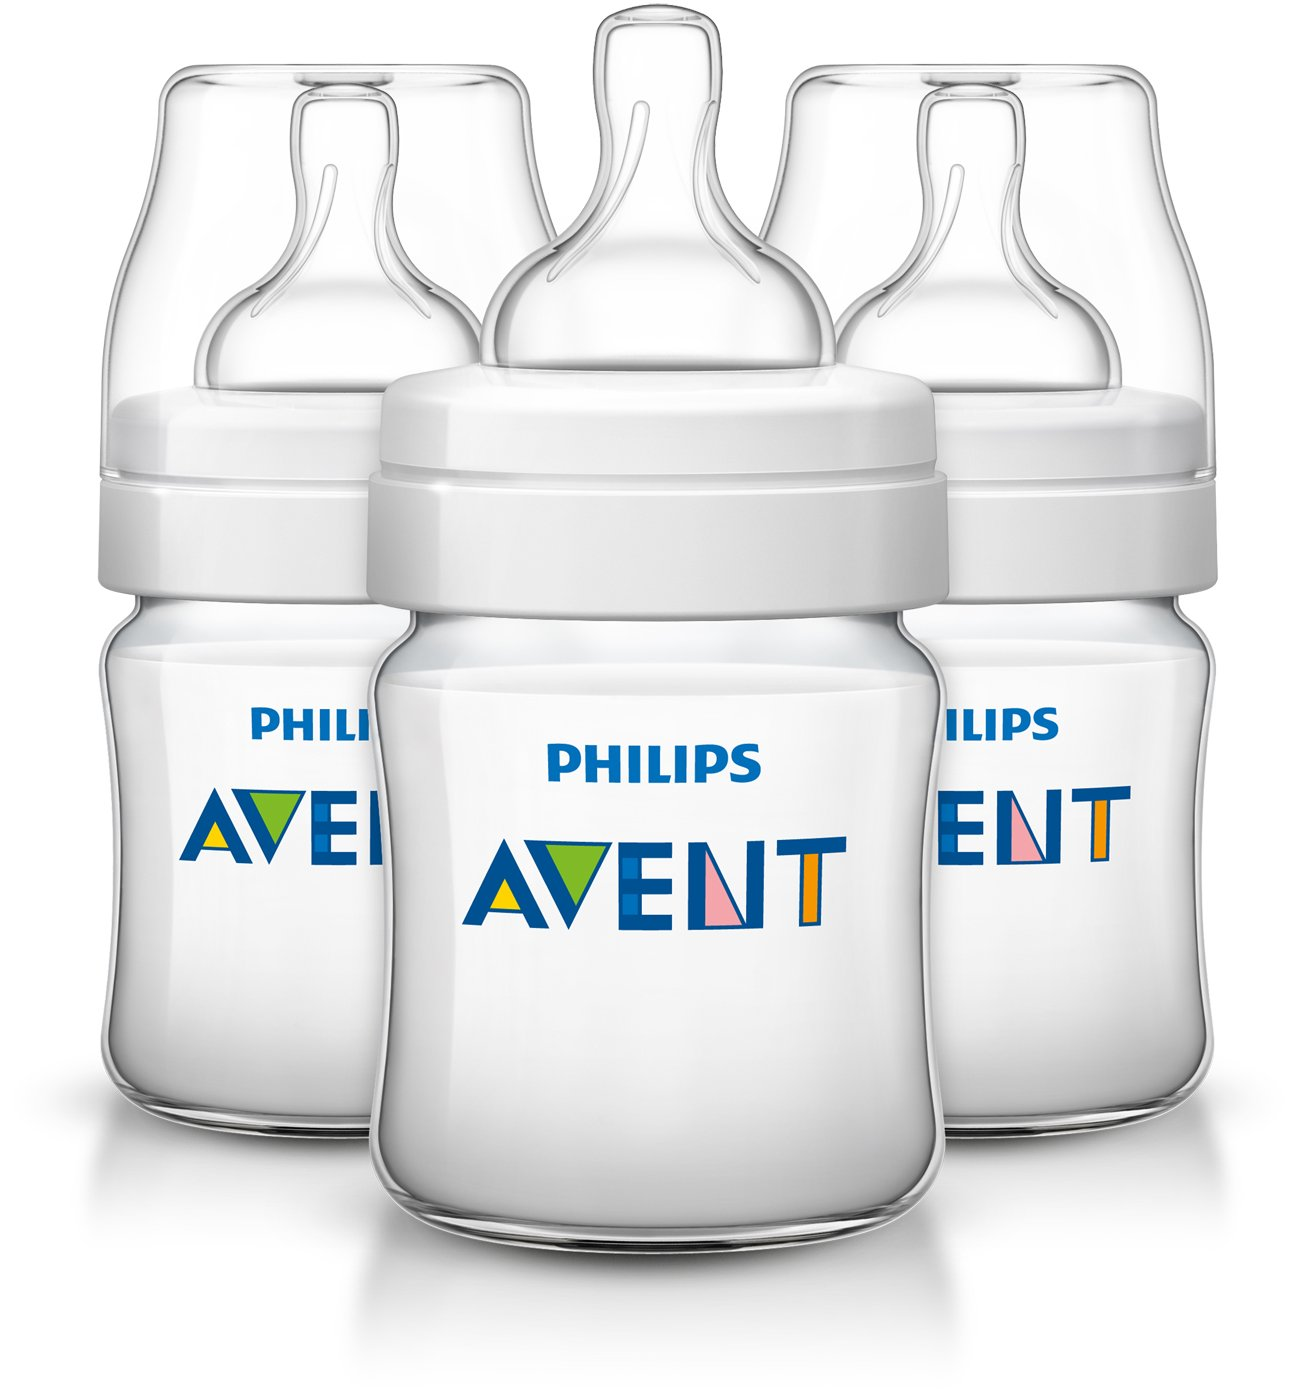 Philips Avent Anti-colic Baby Bottles Clear, 4oz, 3 Piece SCF400/37